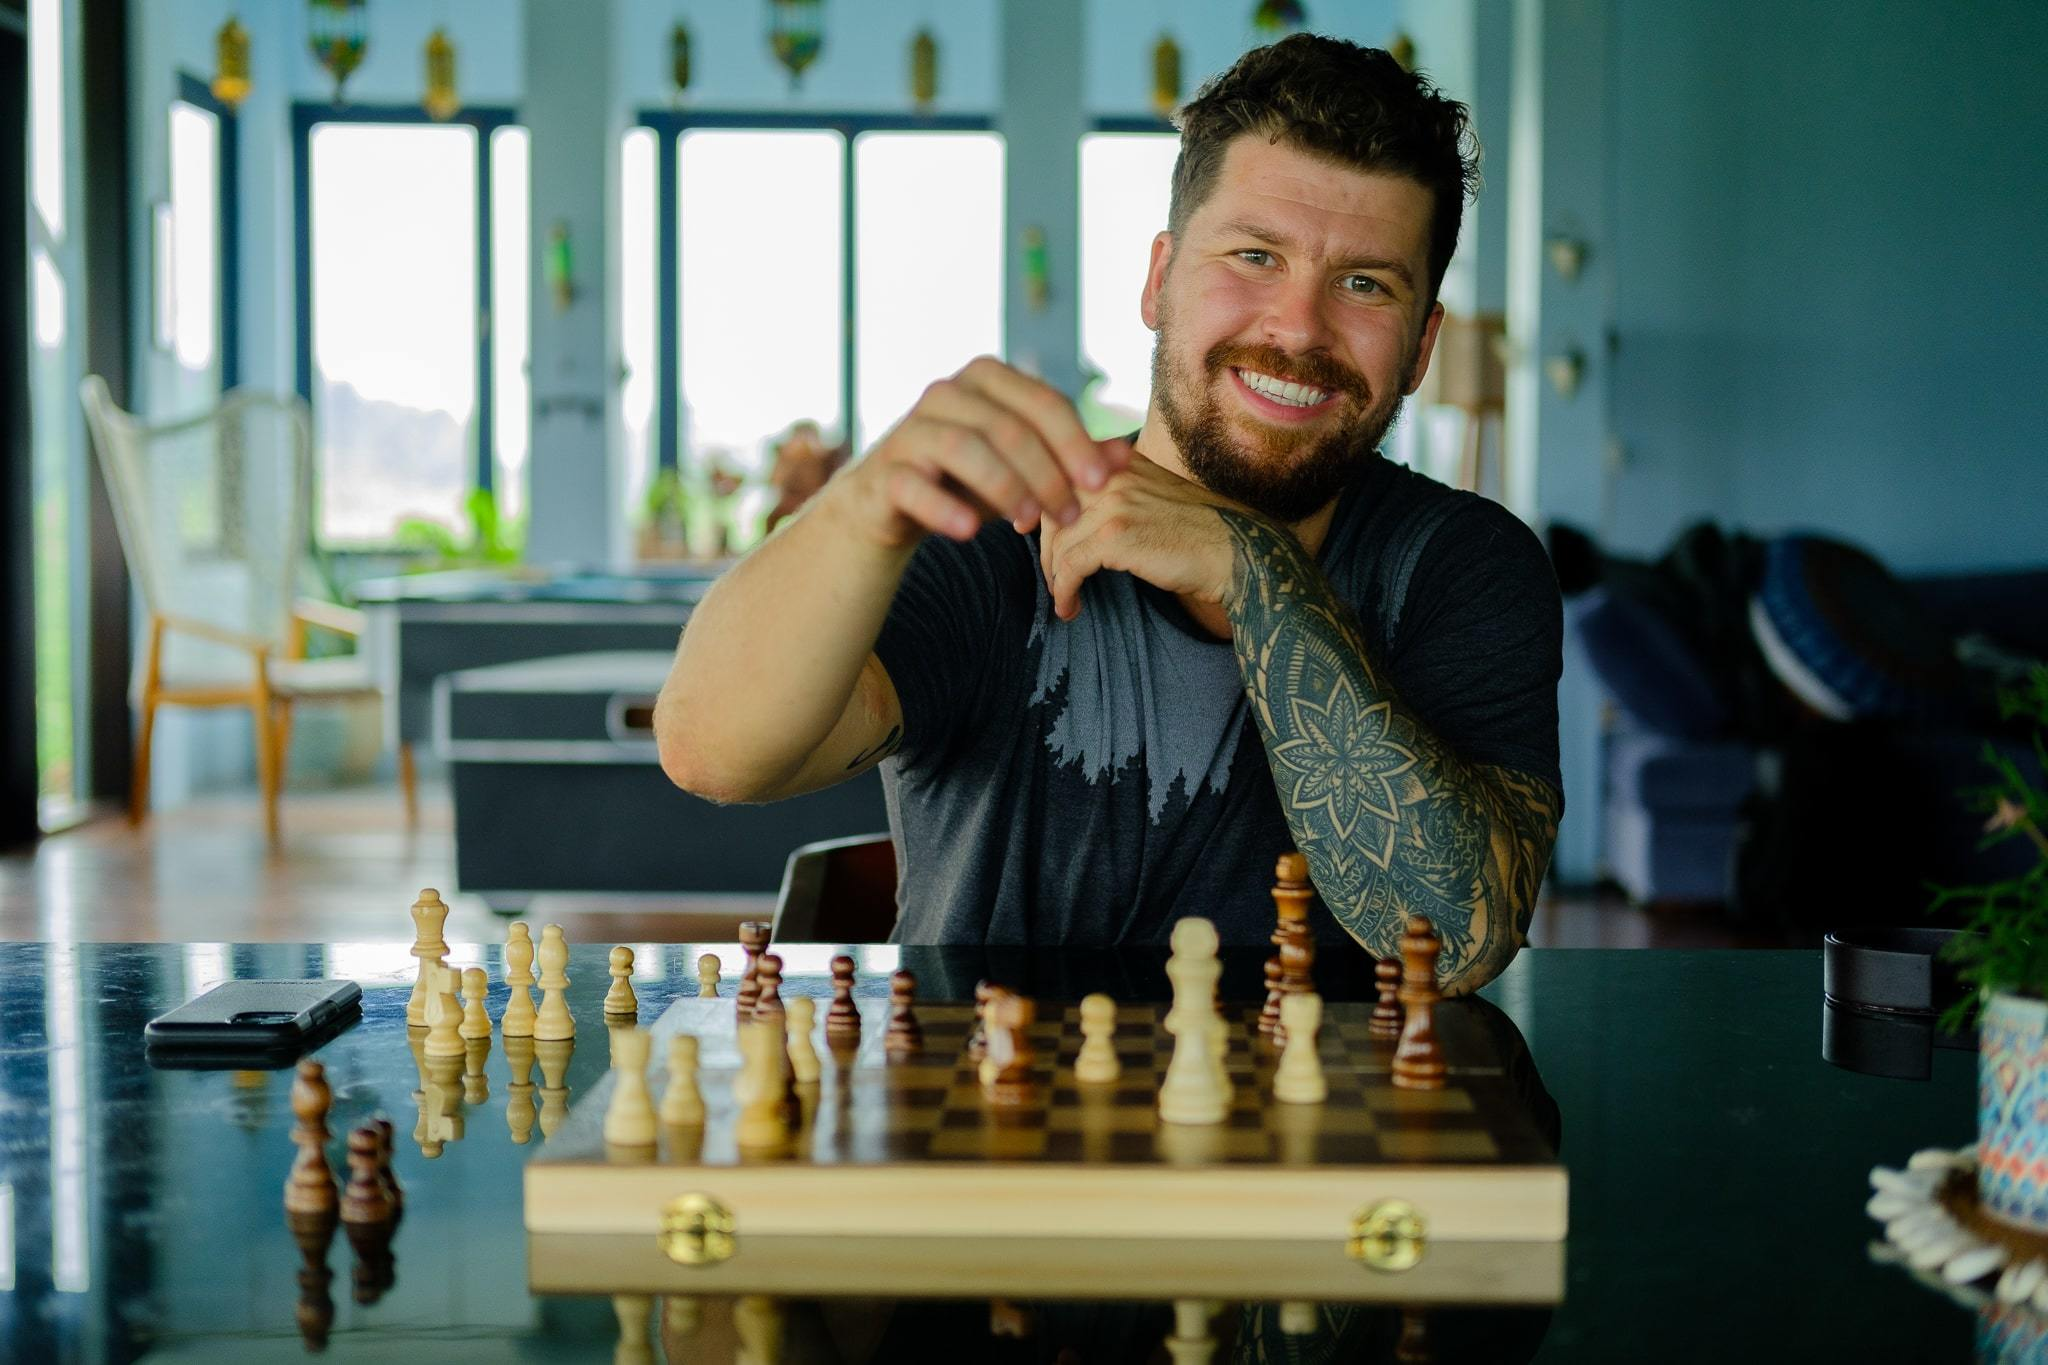 Will Hatton playing chesss representing his prowess in enarning passive income online through affiliate marketing